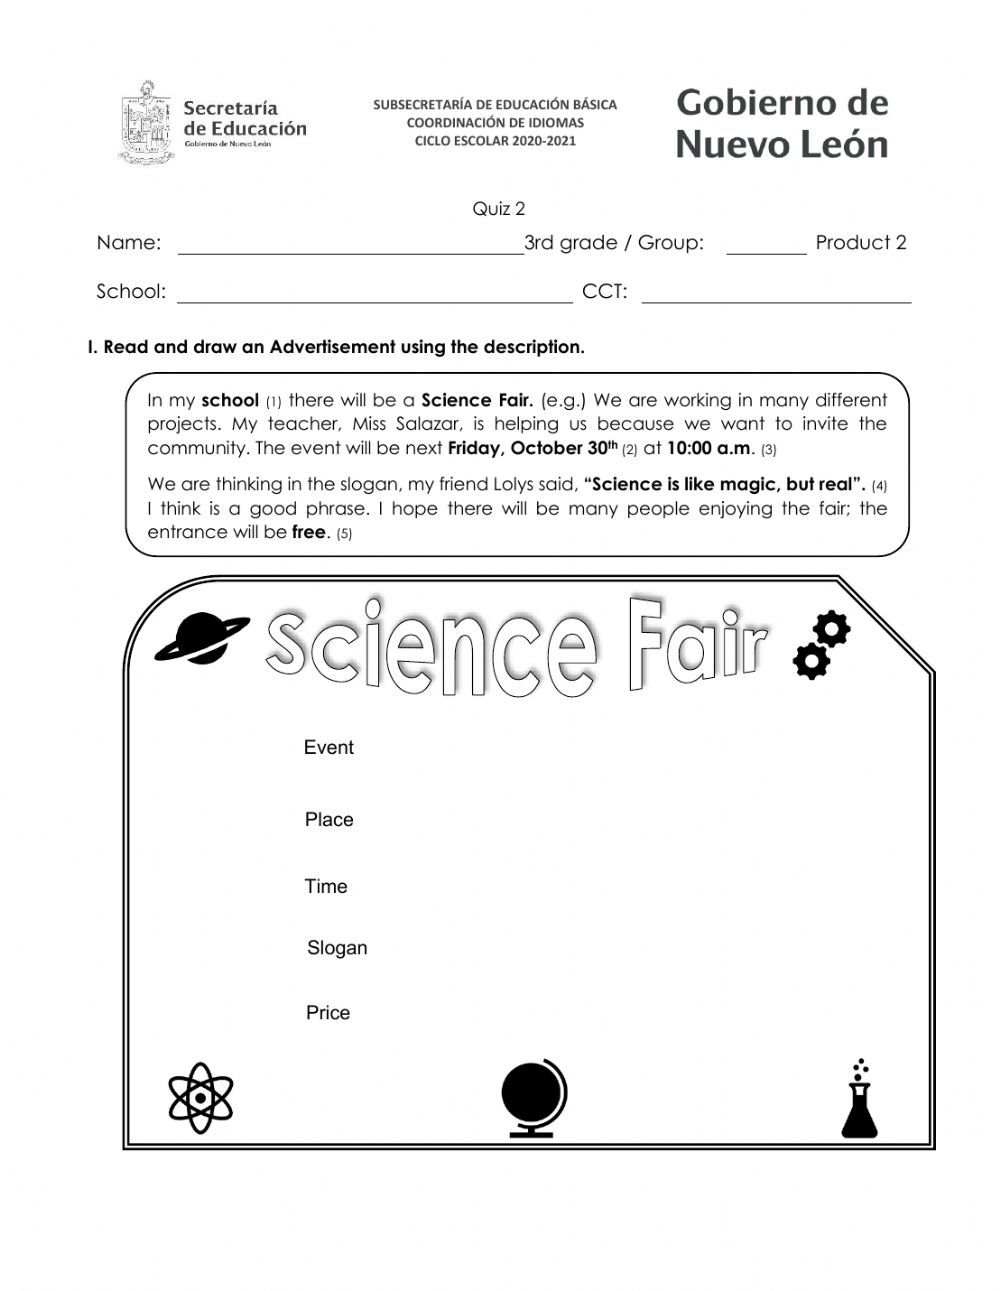 hight resolution of 3rd grade Product 2 worksheet